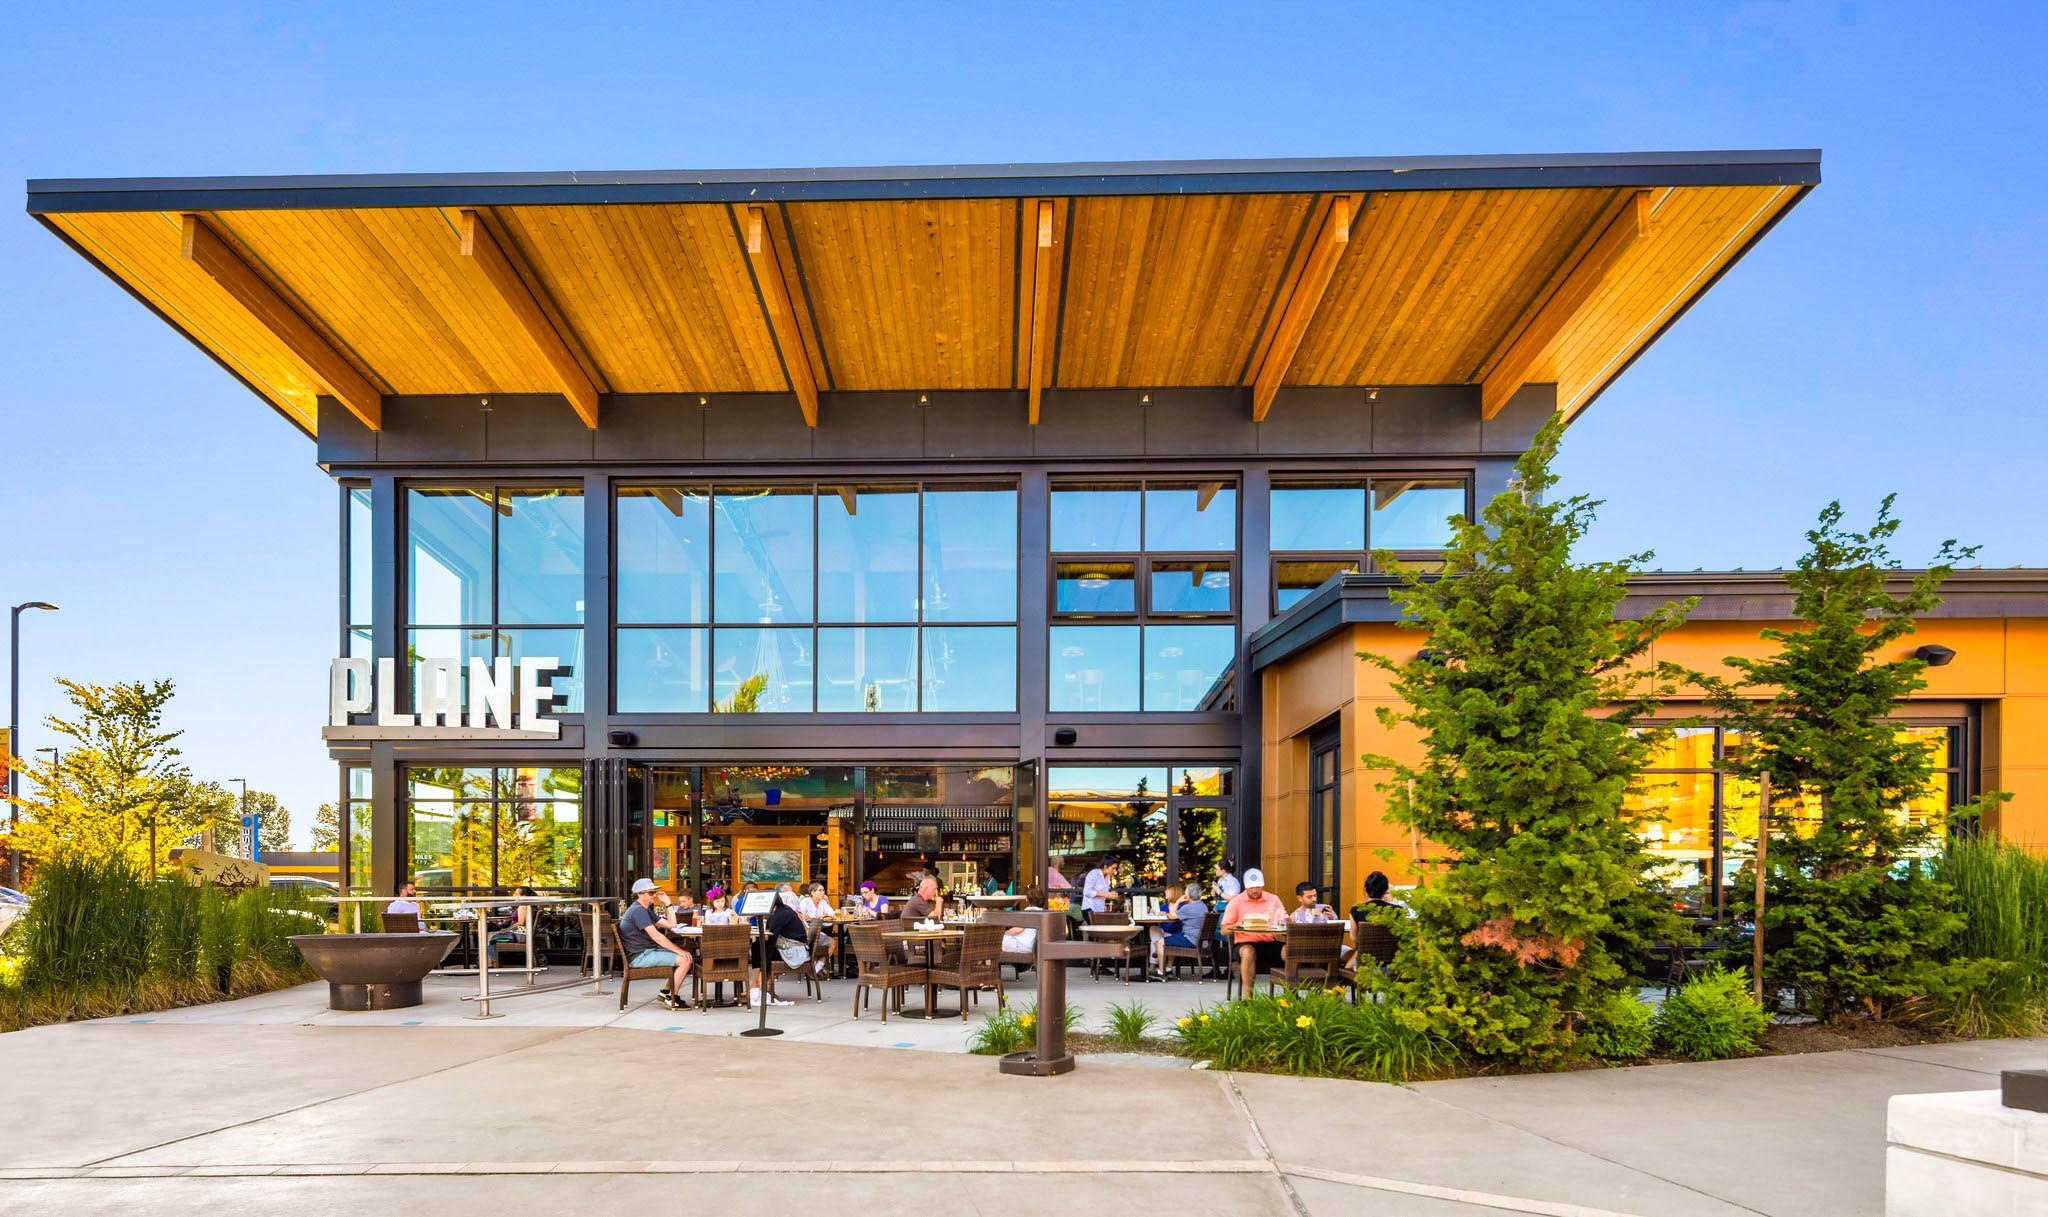 restaurant commercial design with moveable glass walls to eat outdoors